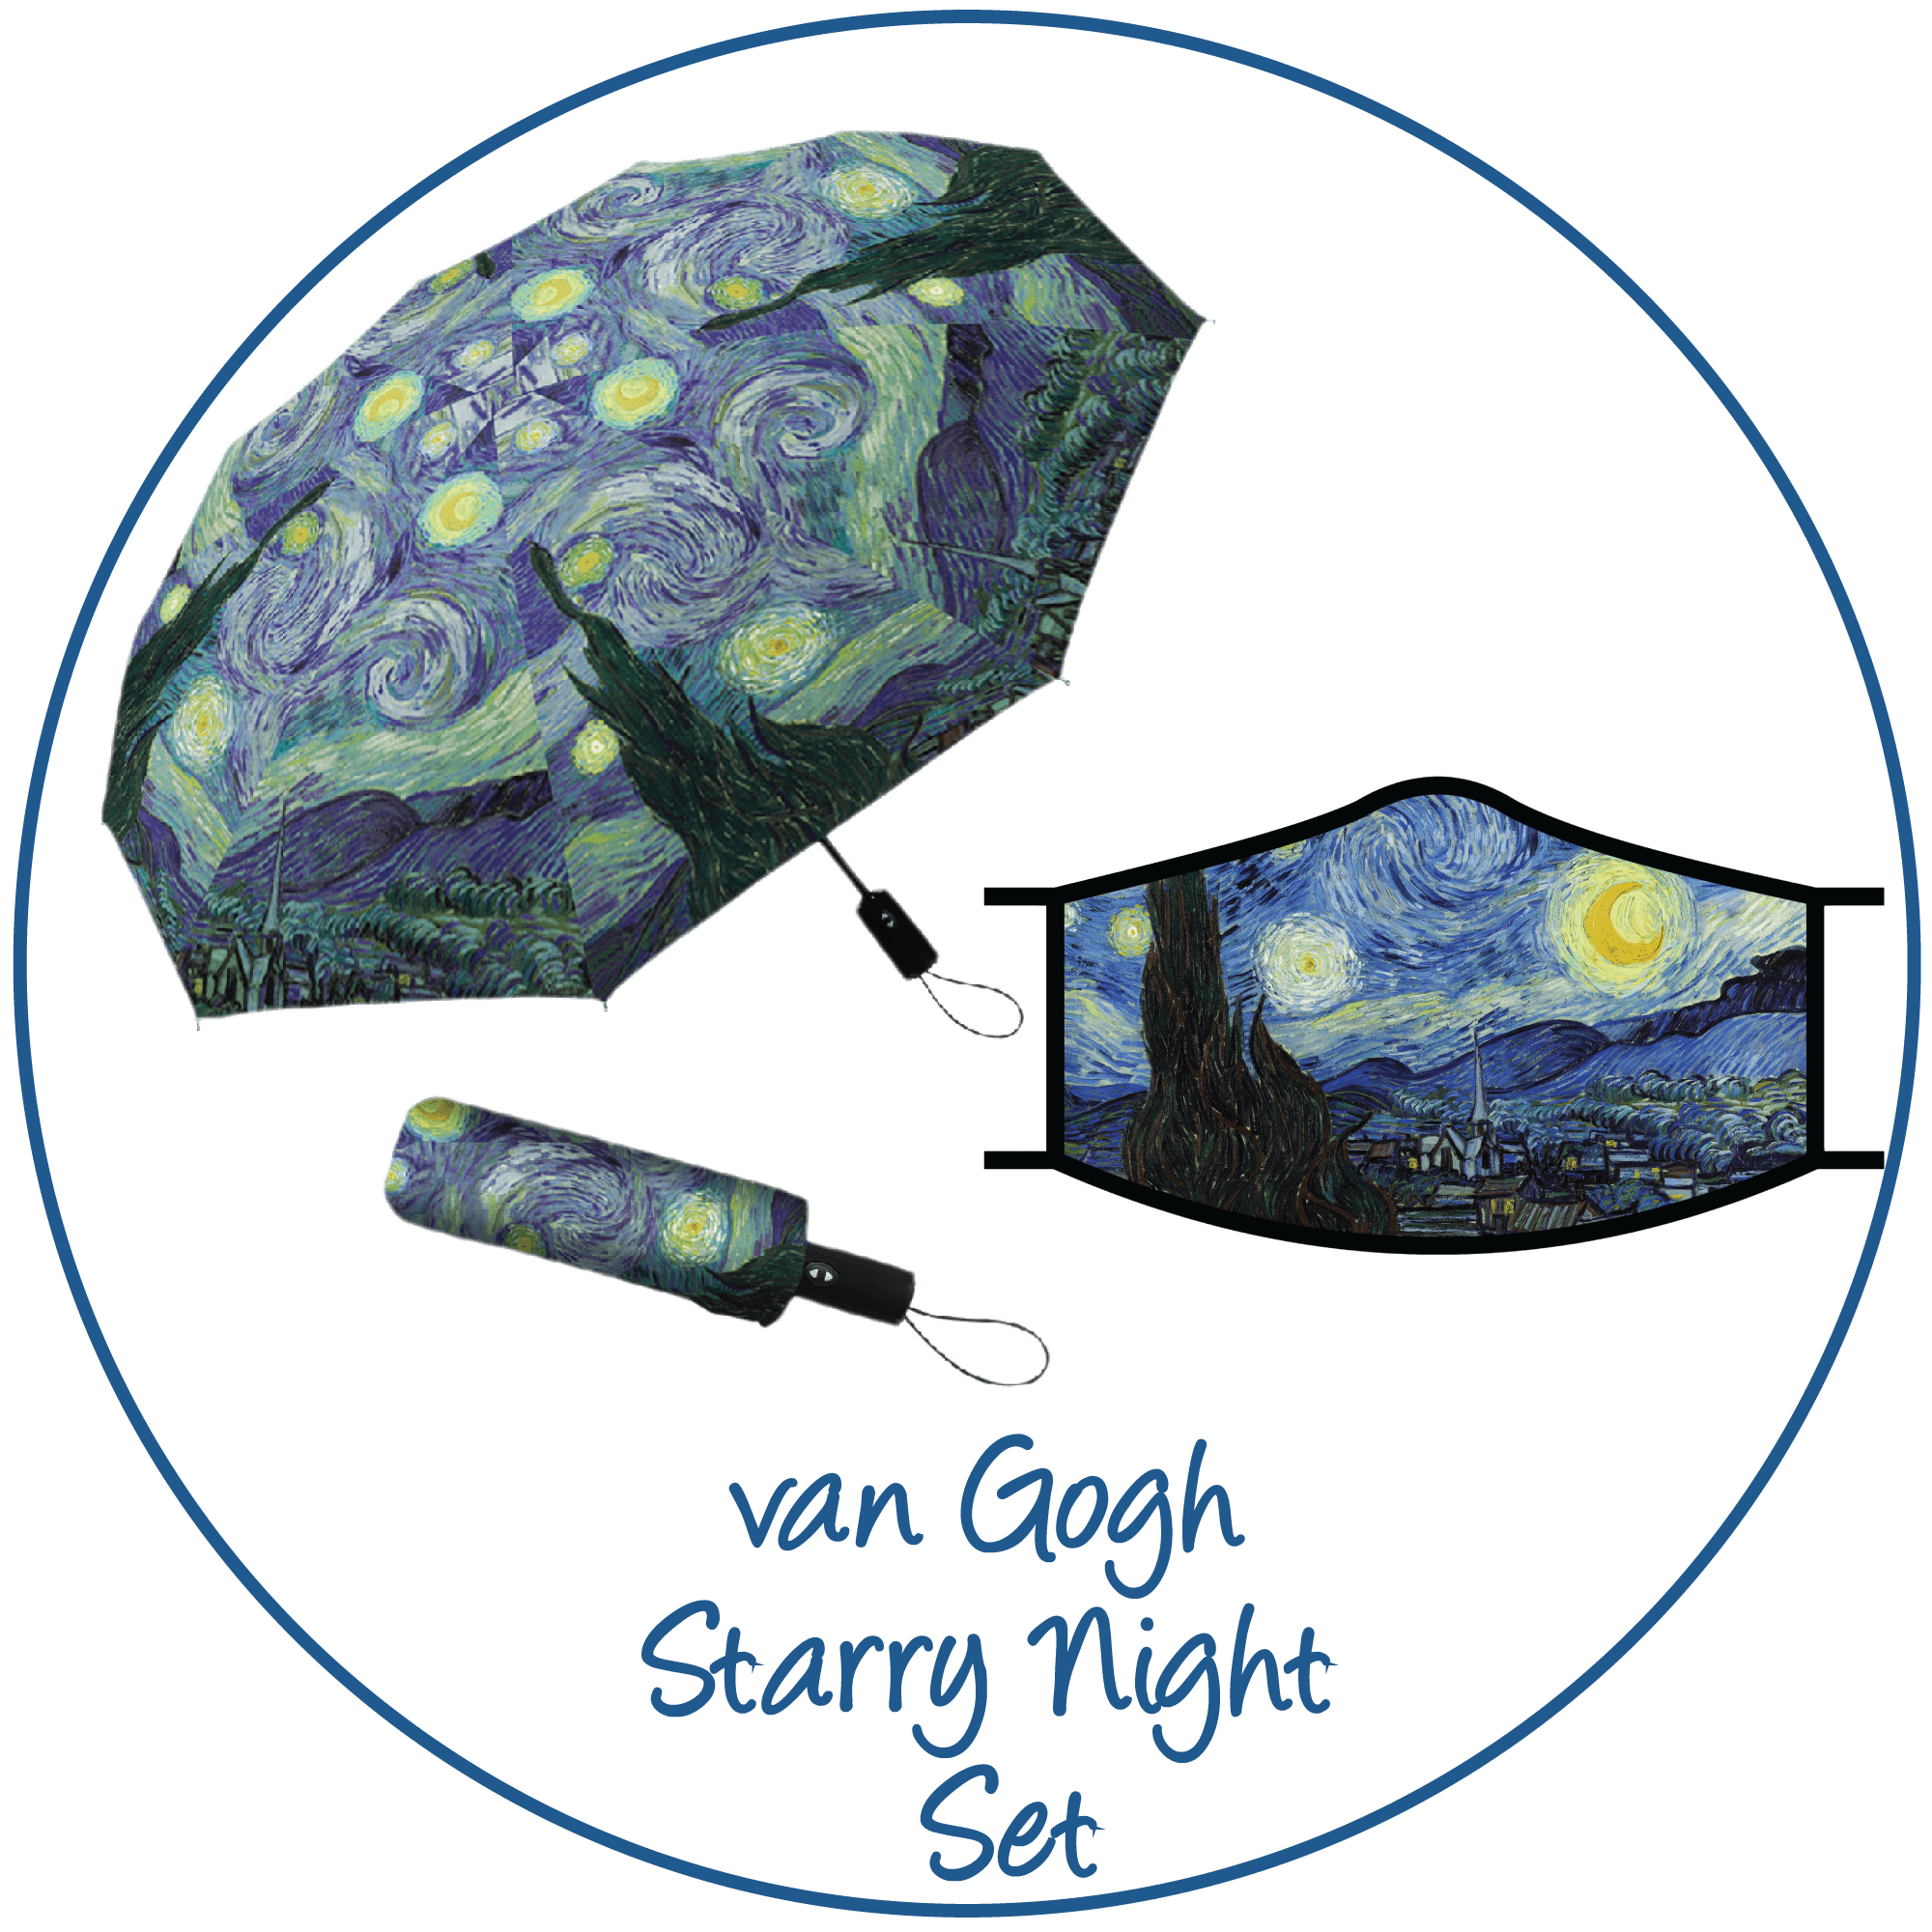 van Gogh Starry Night print folding travel umbrella with sleeve,  paired with a matching van Gogh Starry Night print reusable cloth face mask